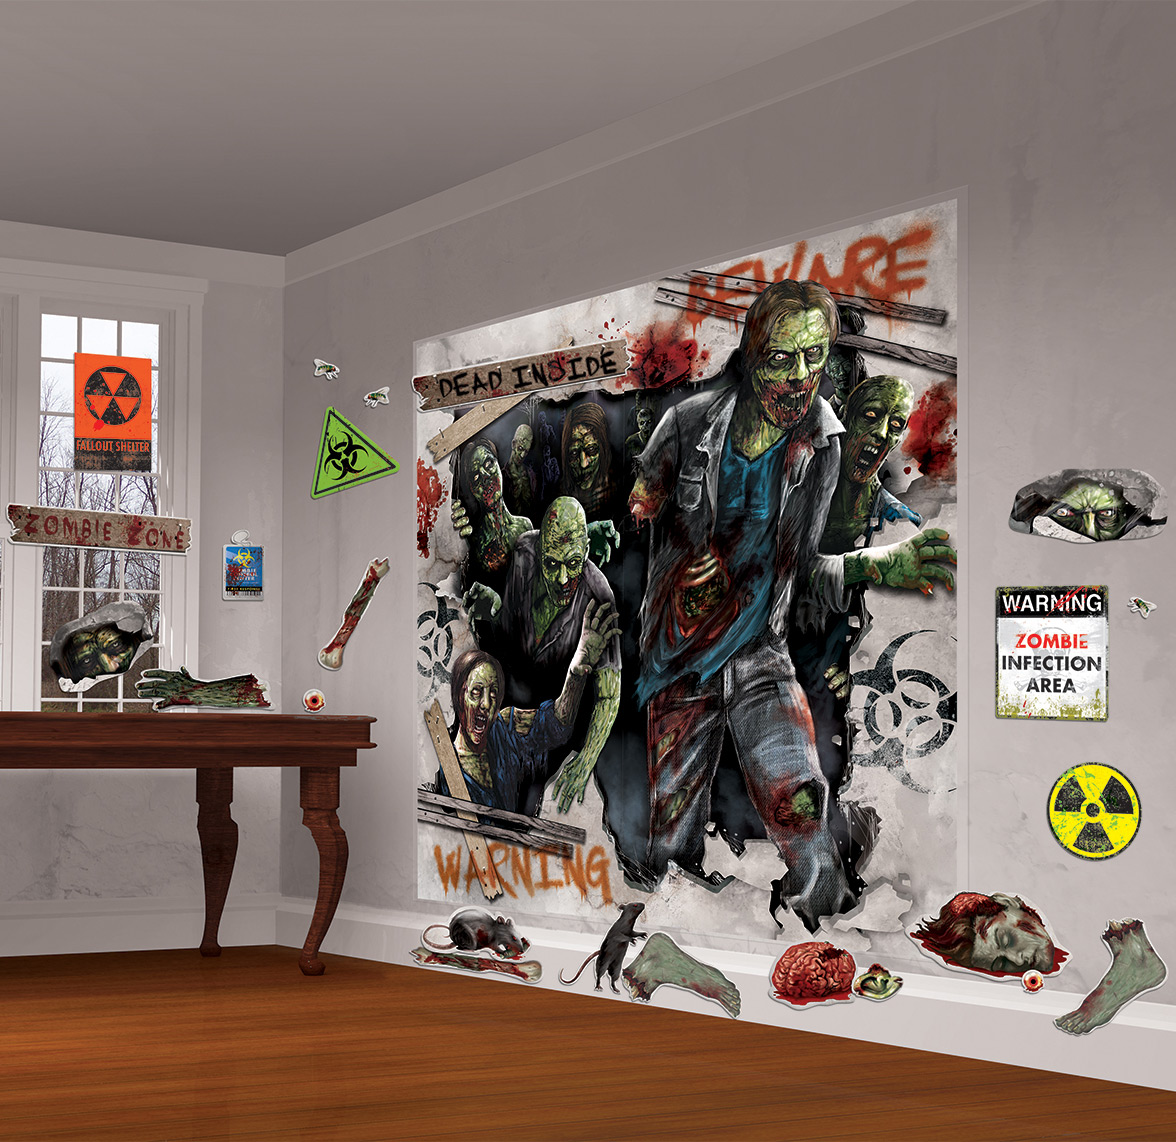 Kit de d coration murale zombies d coration anniversaire for Decoration murale halloween